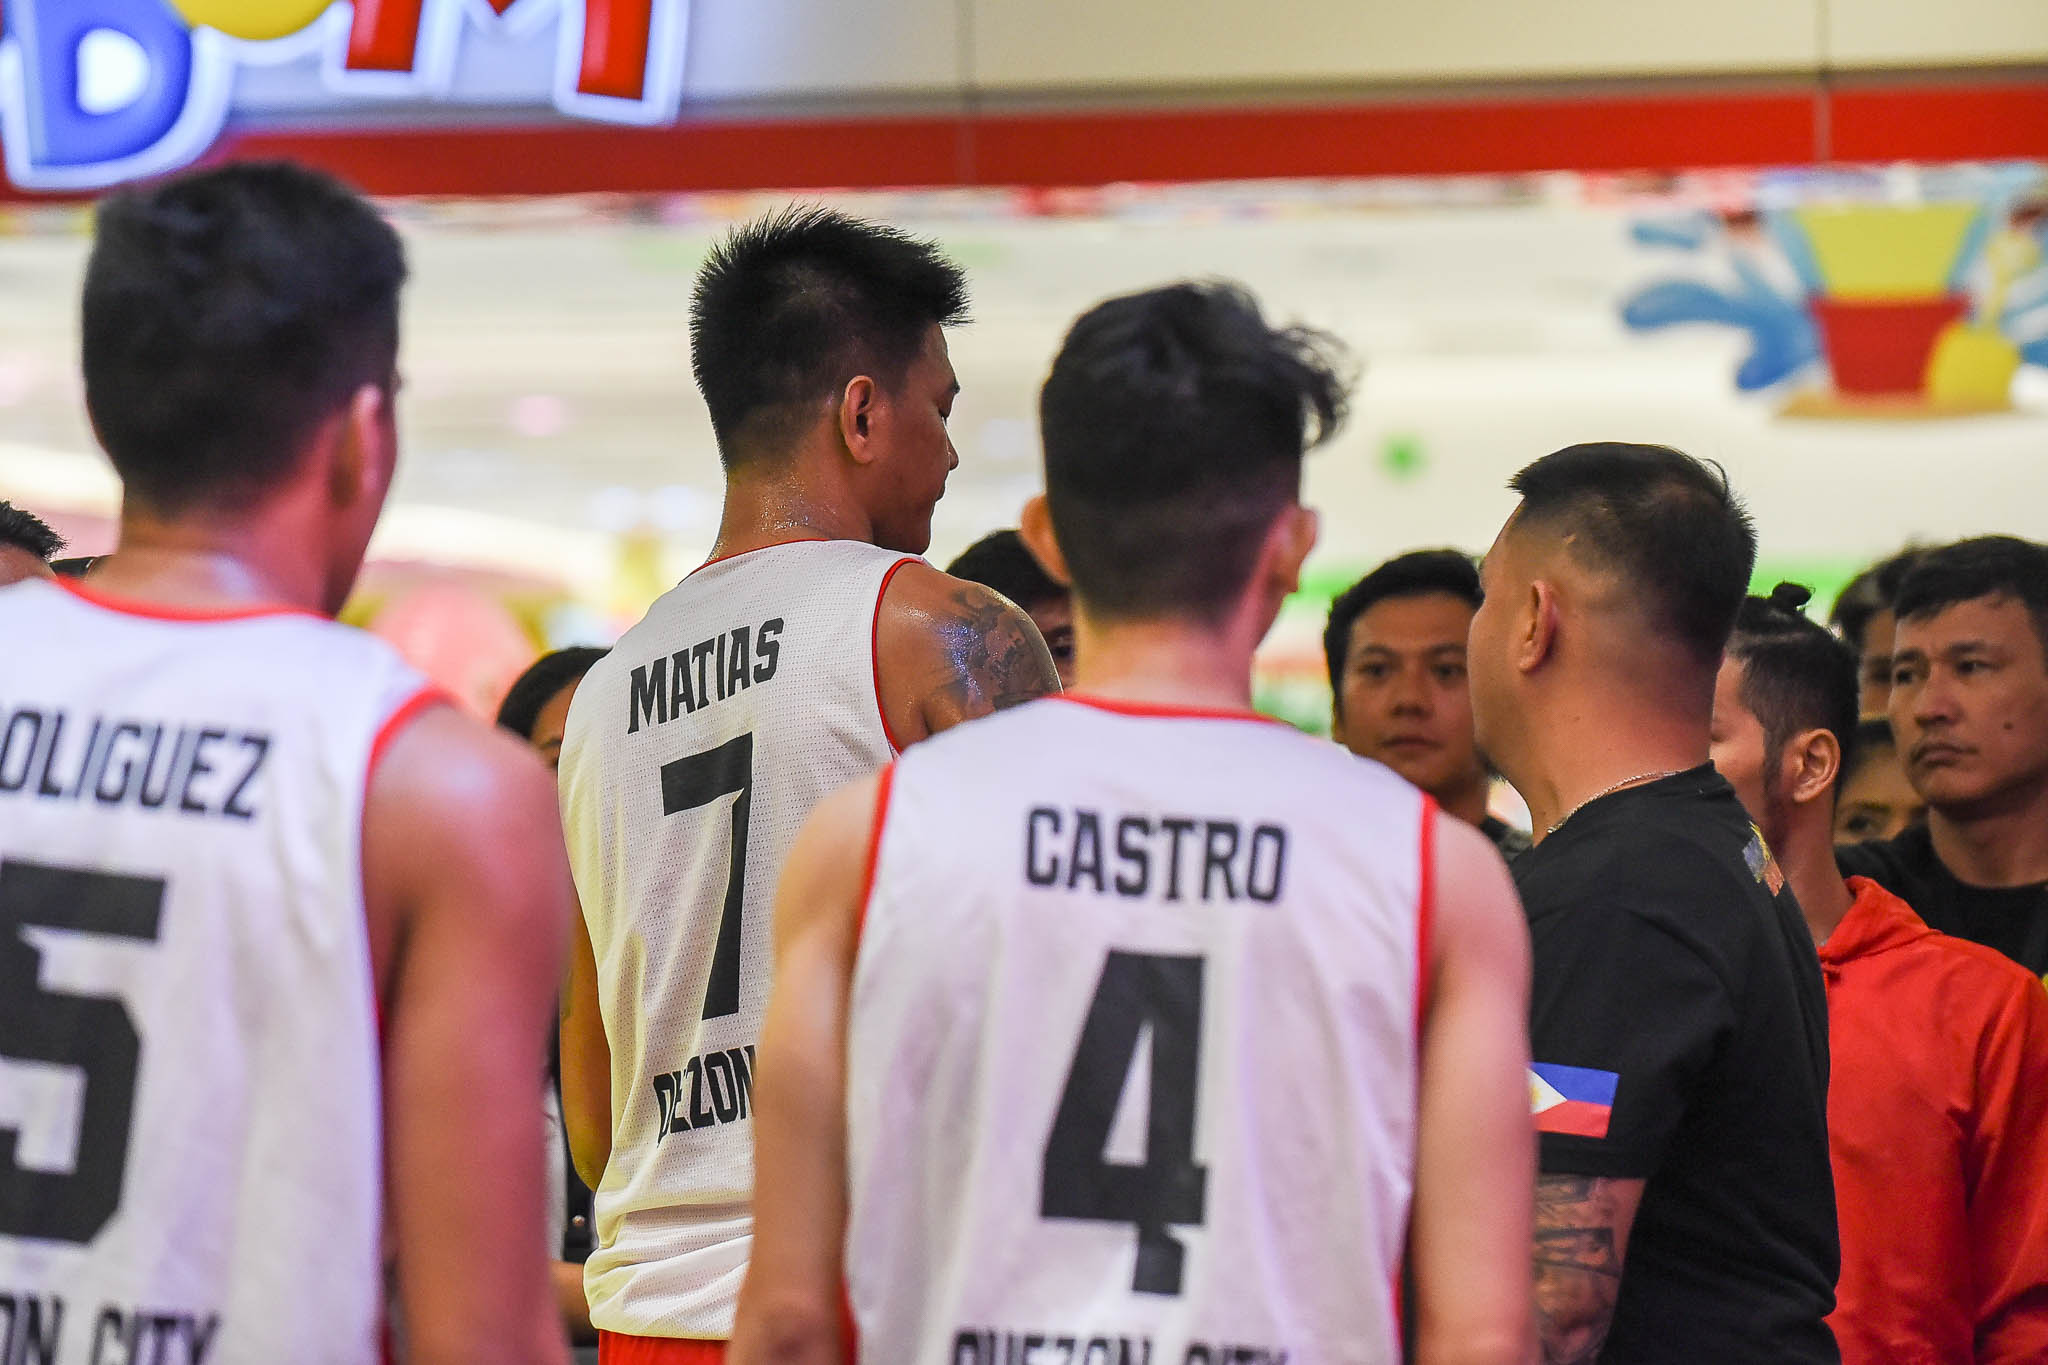 Tiebreaker Times Ronnie Matias echoes Jawo after scuffle with Valenzuela: 'Kung ayaw nila masaktan, mag-chess sila' 3x3 Basketball Chooks-to-Go Pilipinas 3x3 News  Ronnie Matias Quezon City-Zark's Jawbreakers 2019 Chooks-to-Go Pilipinas 3x3 Season 2019 Chooks-to-Go Pilipinas 3x3 President's Cup